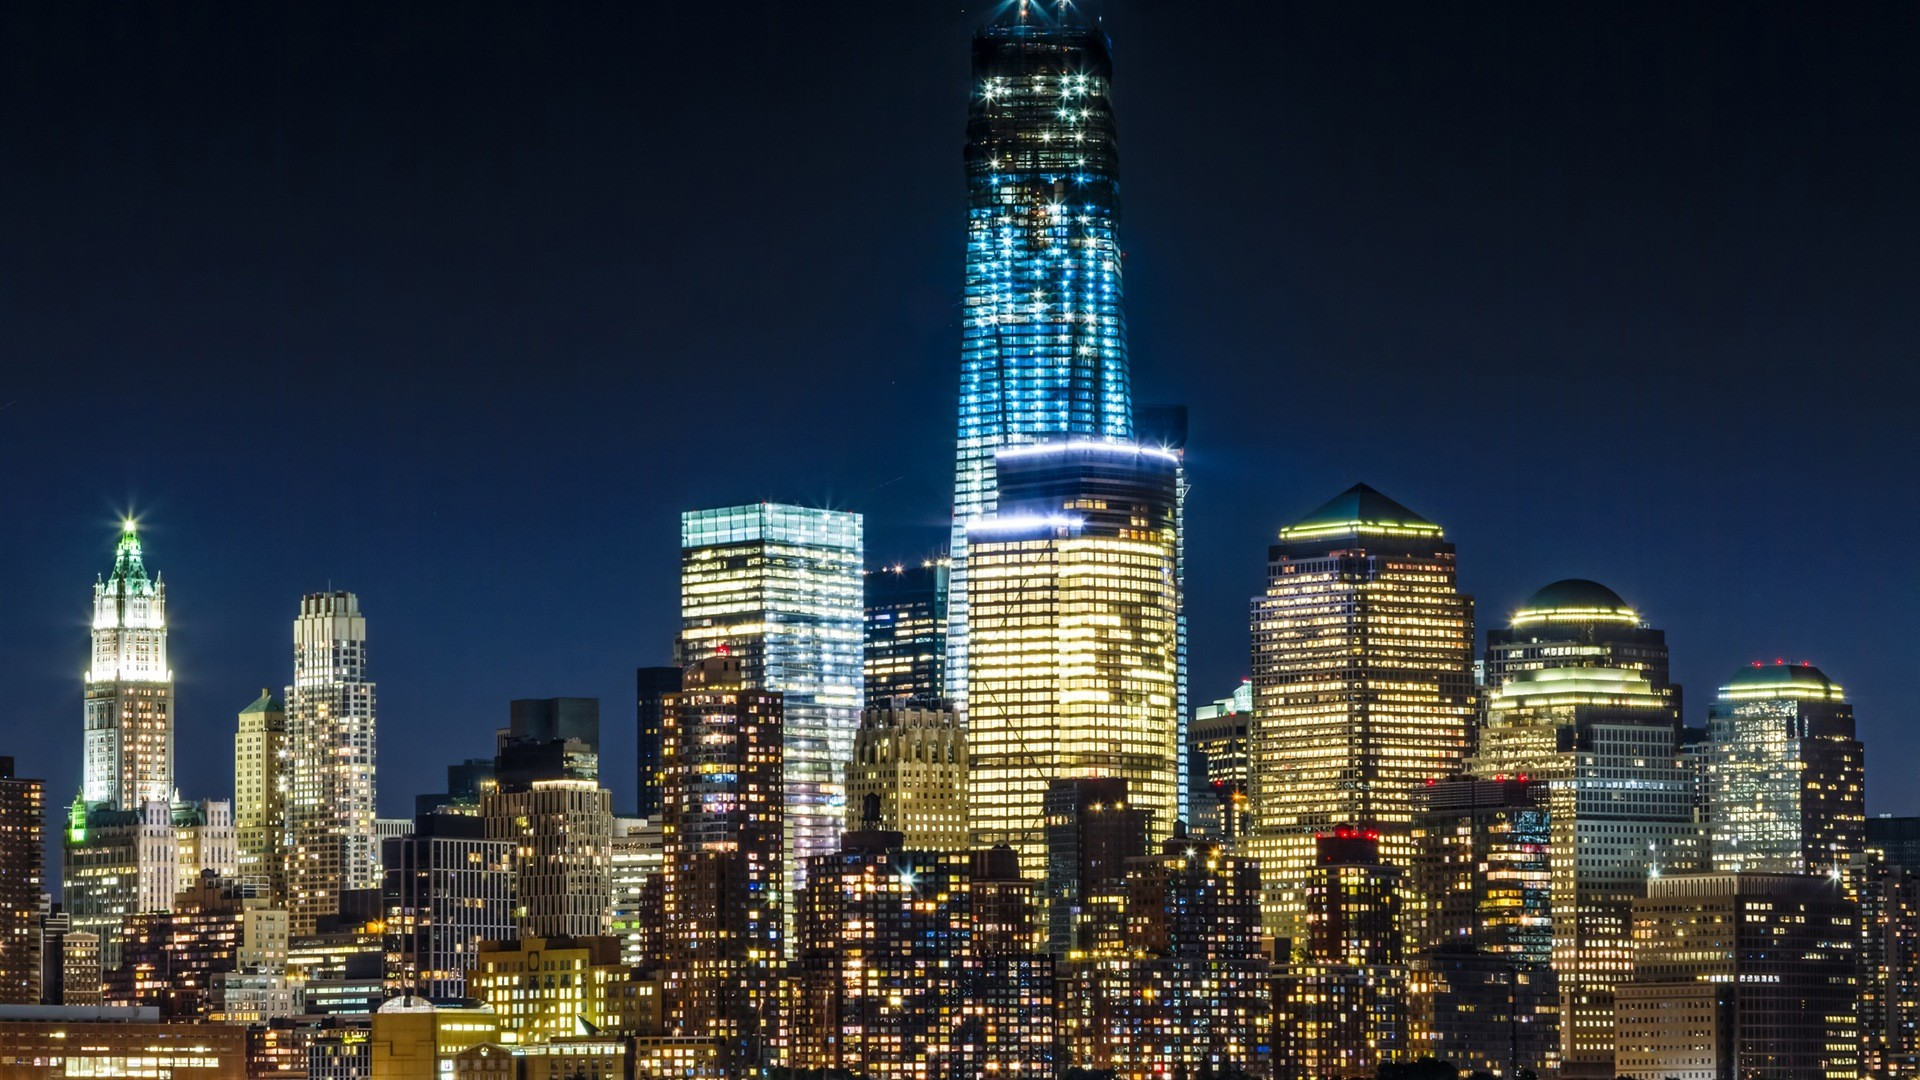 The Empire State Building Lights Tonight